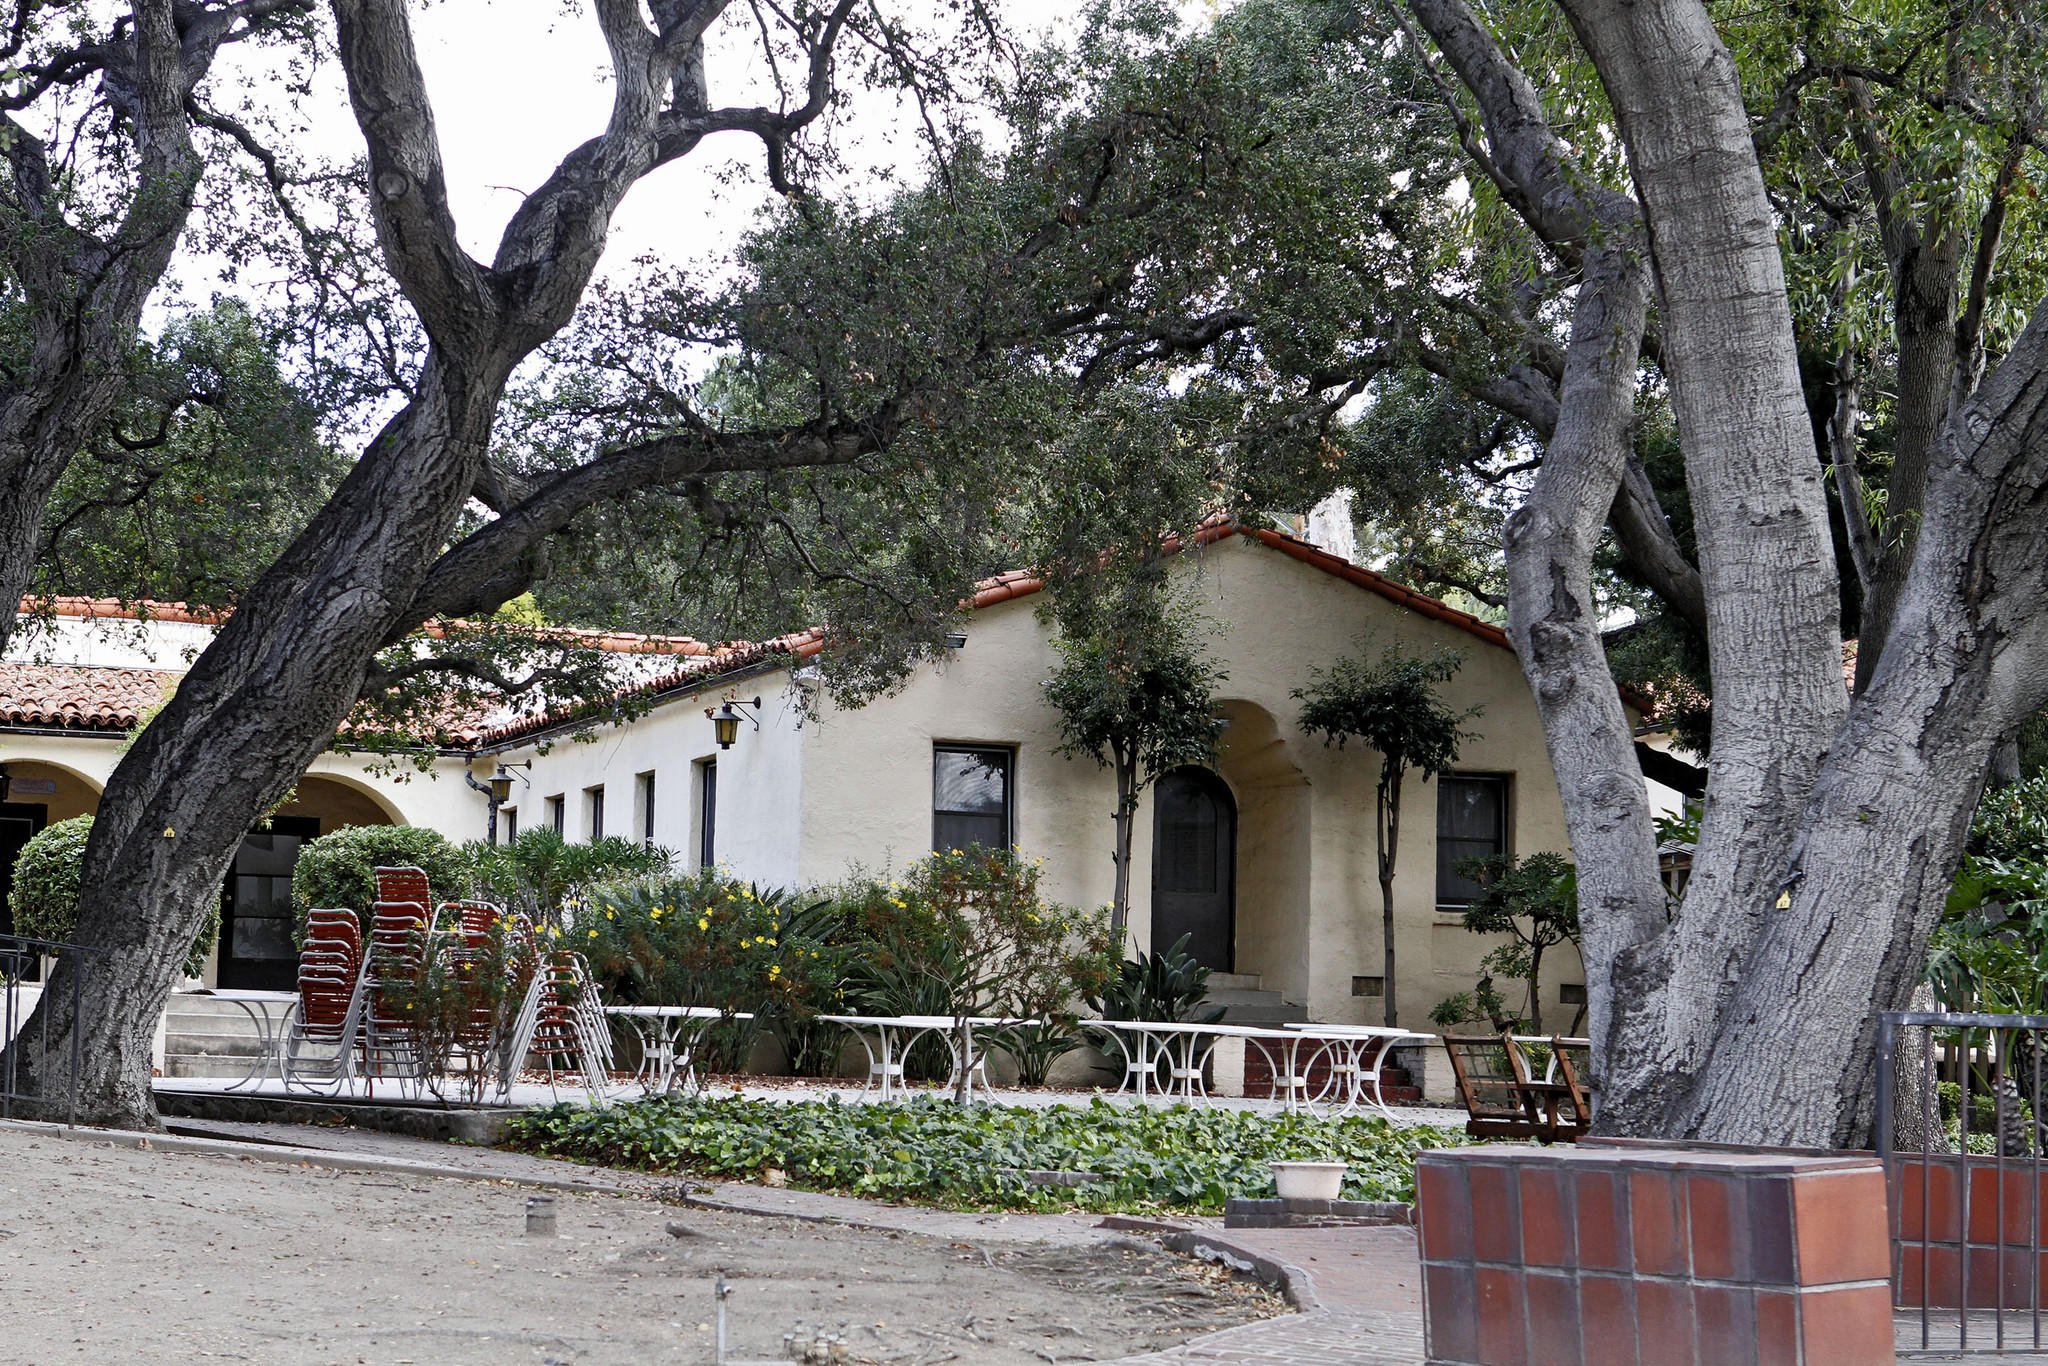 Rockhaven Sanitarium, at 2713 Honolulu Ave. in Montrose on Wednesday, Nov. 27, 2013.